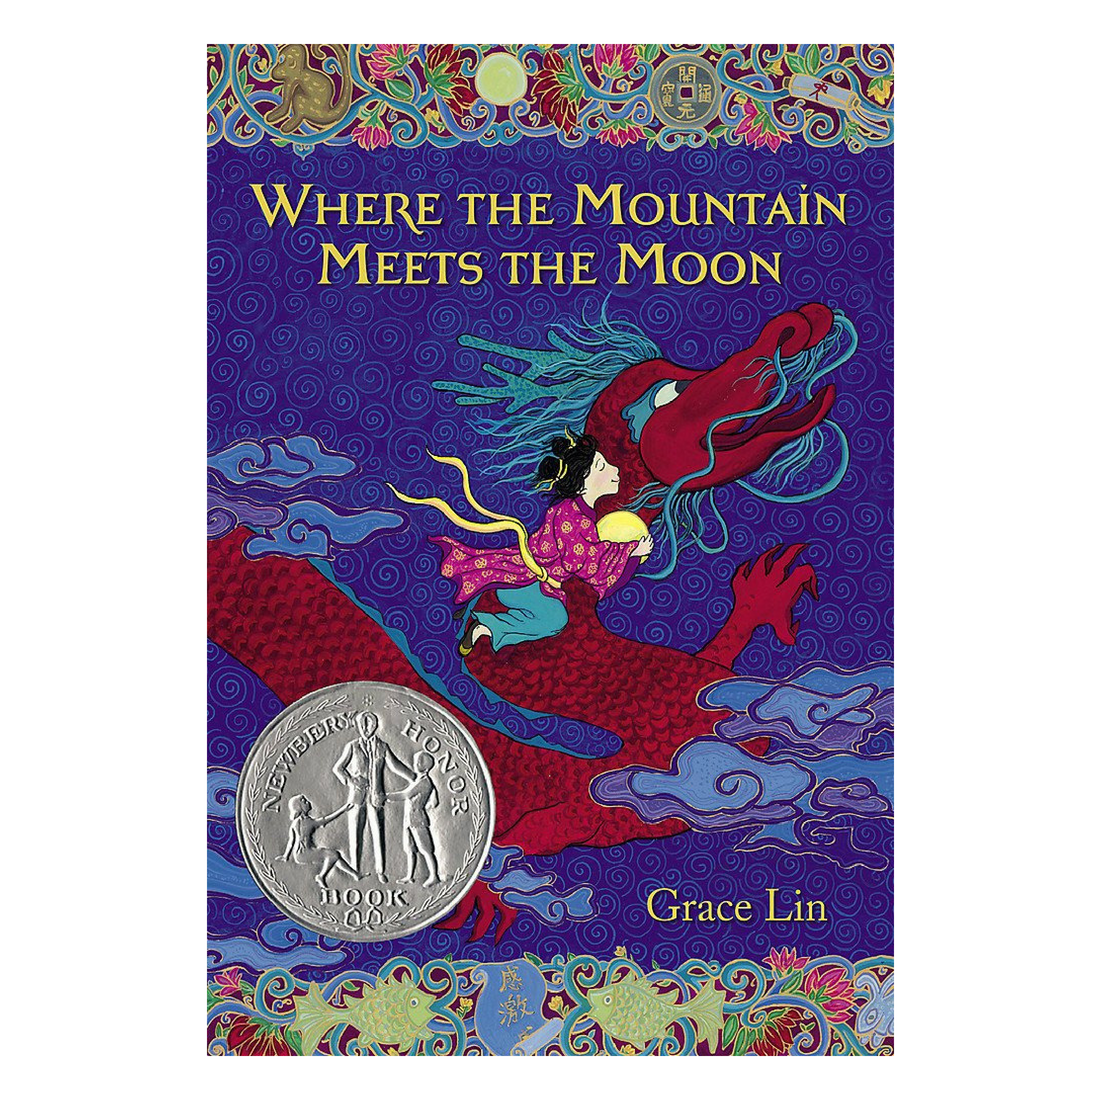 Where the Mountain Meets the Moon - Minli has a heart longing for stories and possibility but lives in a dull village with her father and mother where Fruitless Mountain meets the Jade River. Similar to the tale of Jack and the Beanstalk, where Jack buys magic beans rather than something sensible, Minli buys a goldfish from a peddler who promises that it will bring good fortune to her family. Feeling guilty for wasting her family's money, Minli lets the fish go into the river and as he is released he reveals to Minli that he knows how to get to Never Ending Mountain and meet the Man in the Moon. So she sets off to seek answers, help her family and encounters magical creatures on her way. Gorgeous writing and simple illustrations make this an excellent read aloud for parents with younger kids as well.